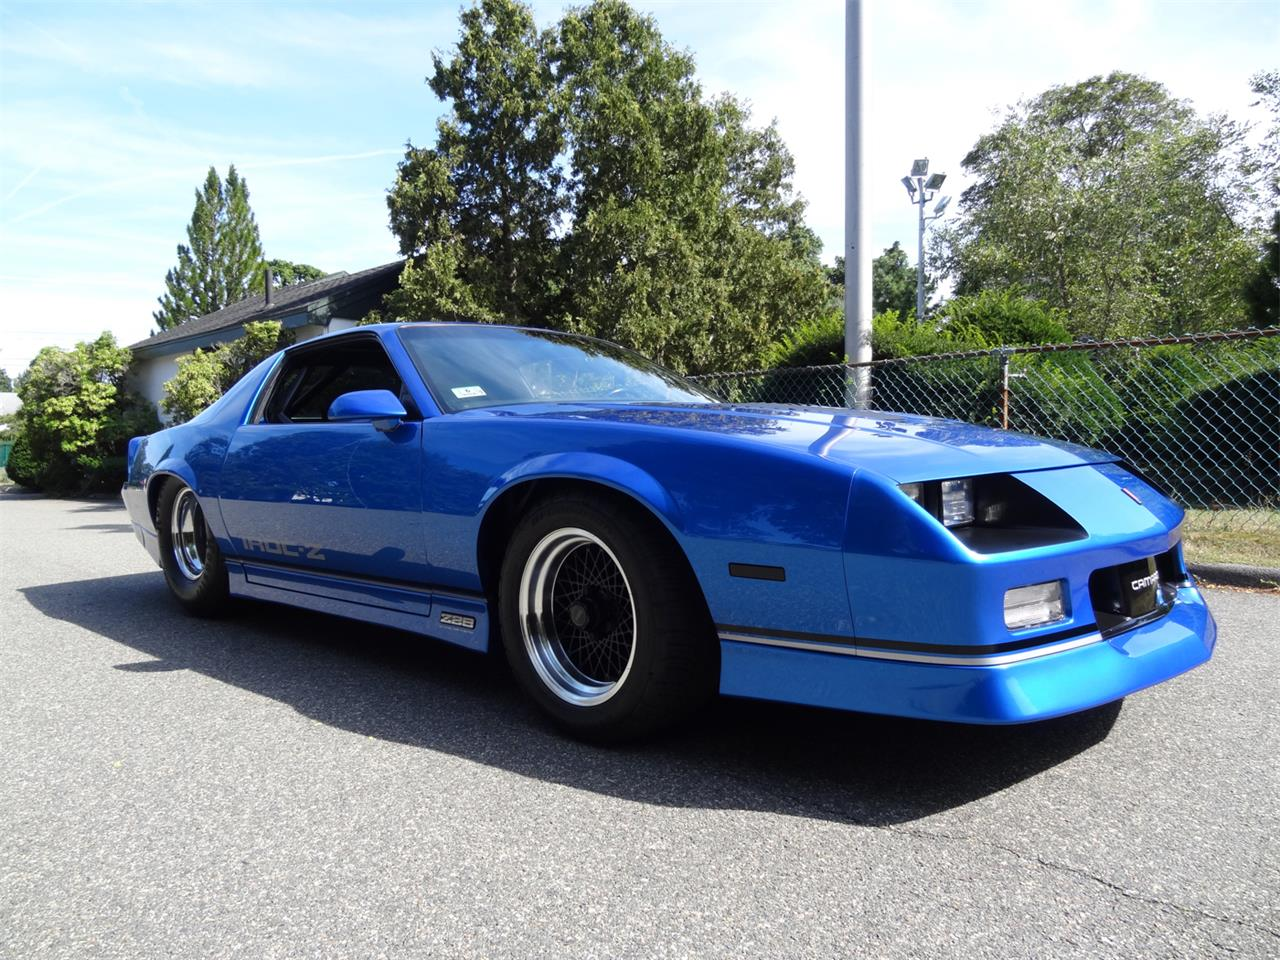 Large Picture of '83 Chevrolet Camaro IROC Z28 - $30,000.00 Offered by a Private Seller - QUEA